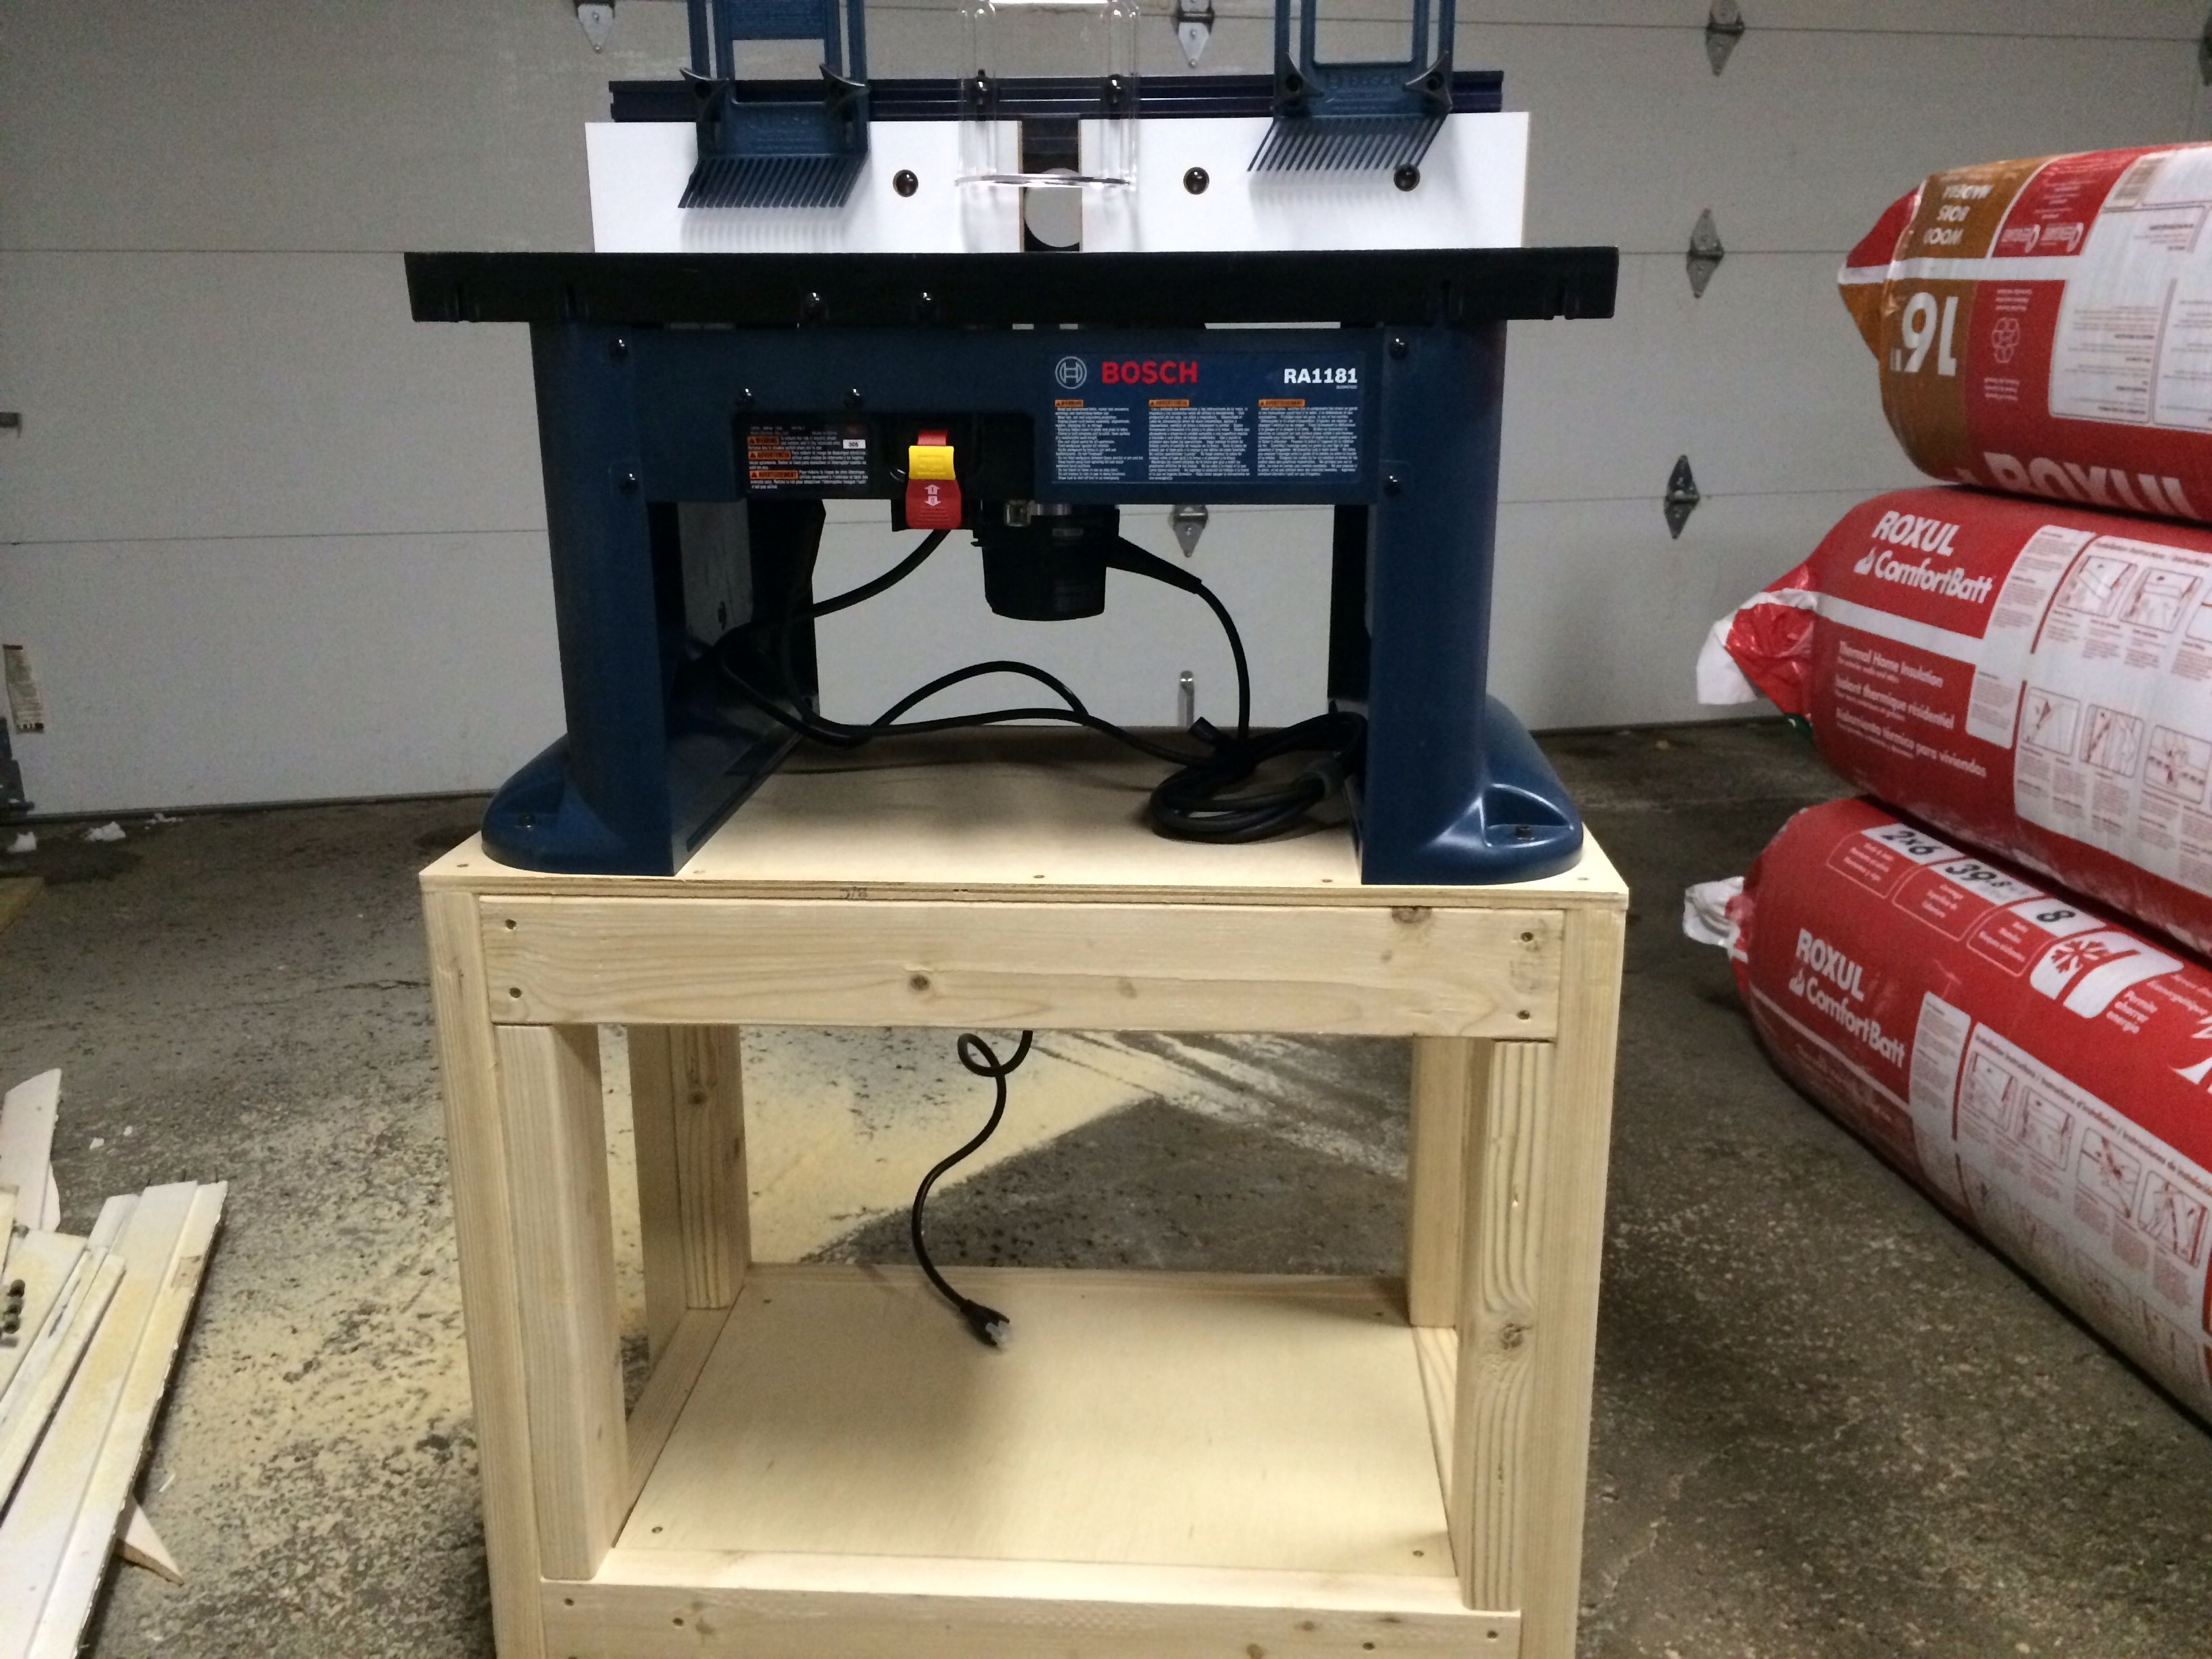 Bosch router table stand shop projects pinterest for How to make a router table stand